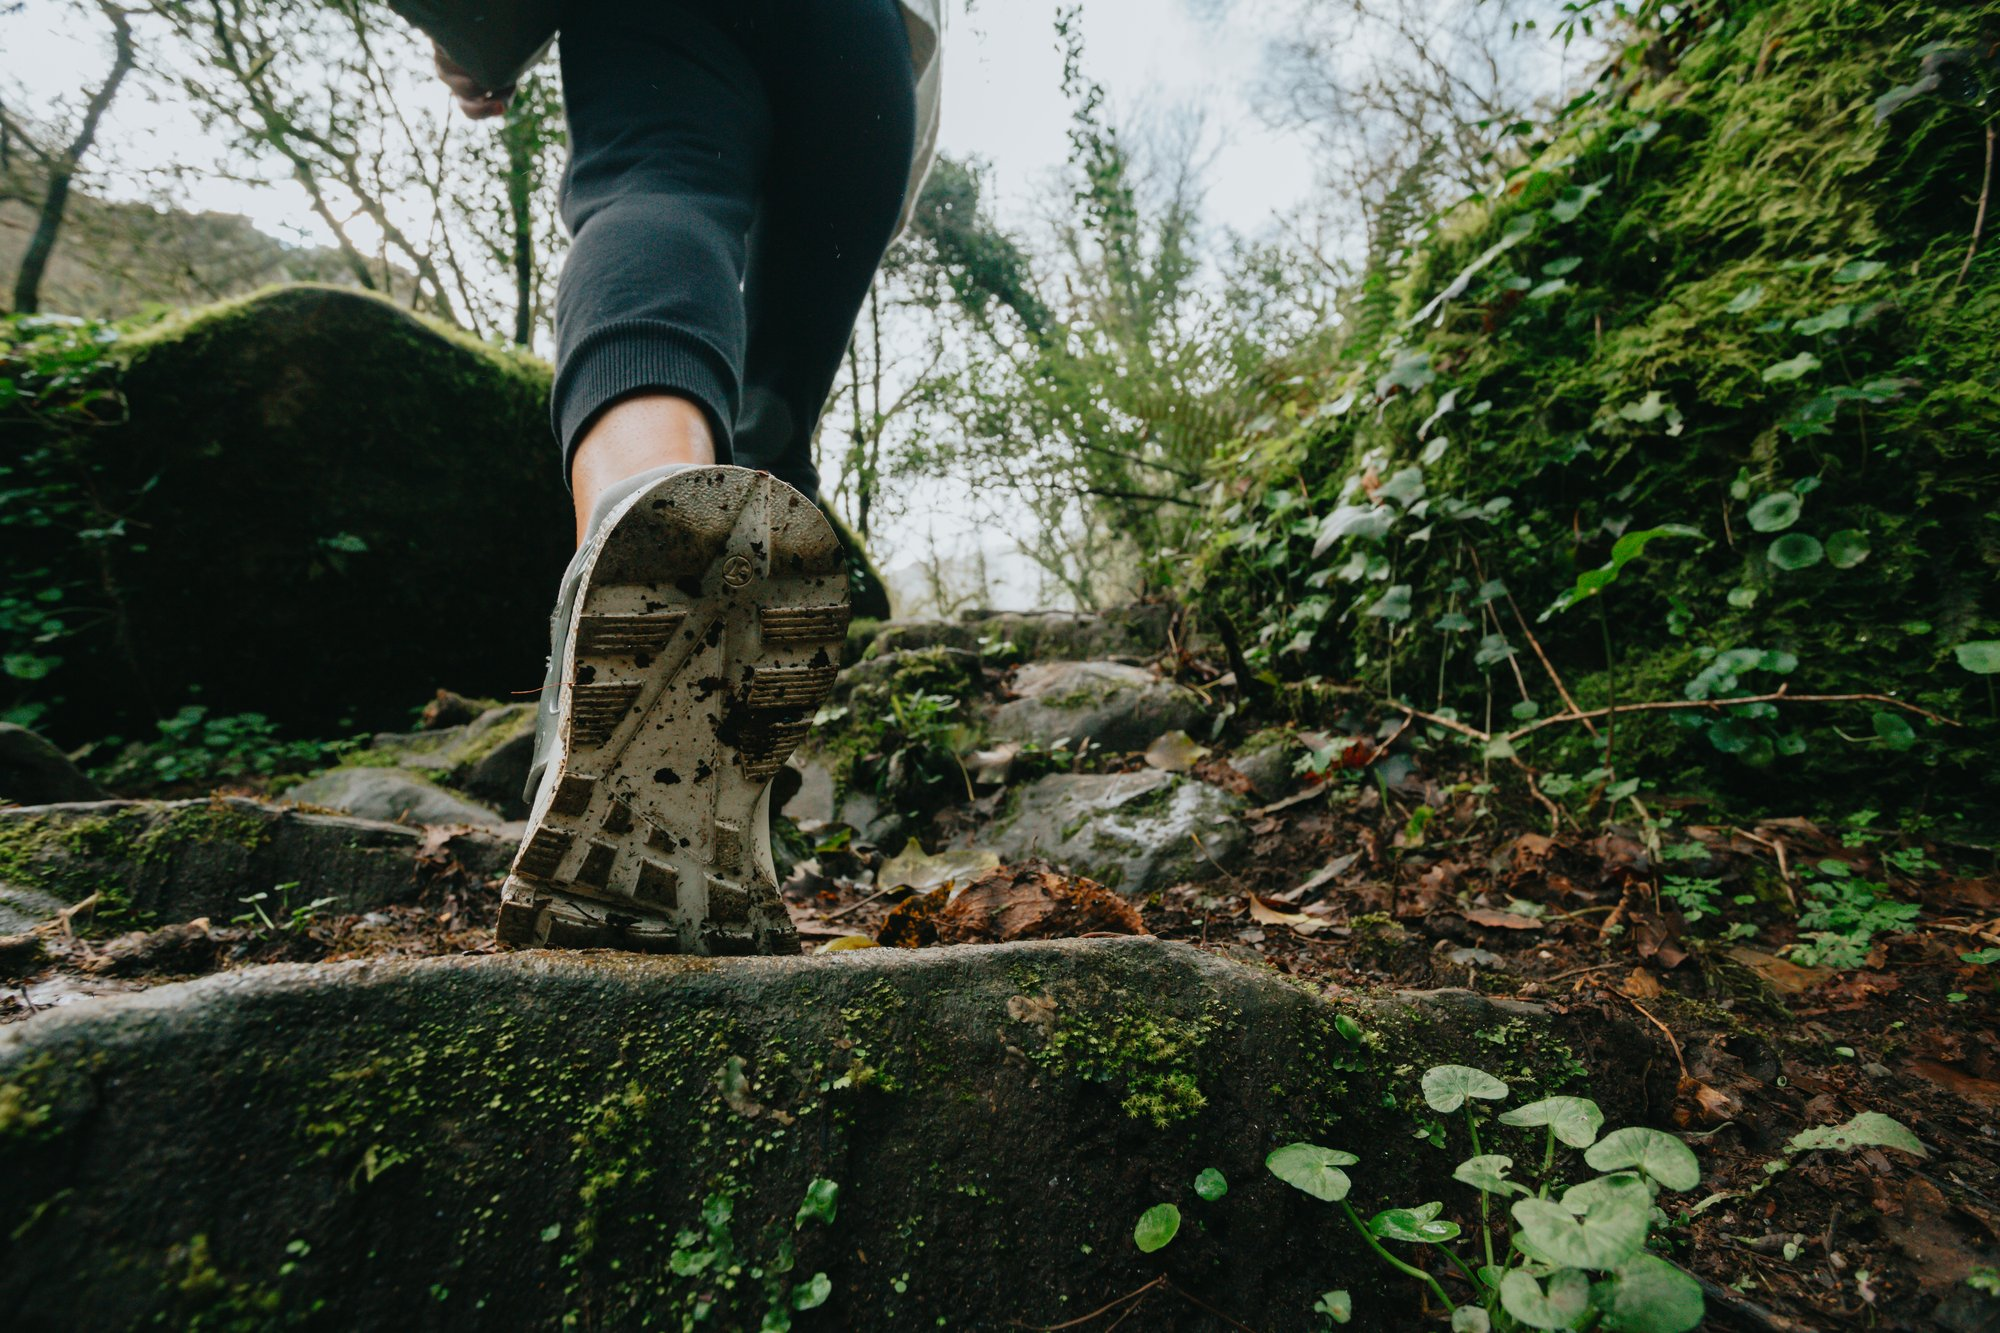 low angle of a person walking up stone steps through a forest 走在石阶上穿过森林的人的低角度